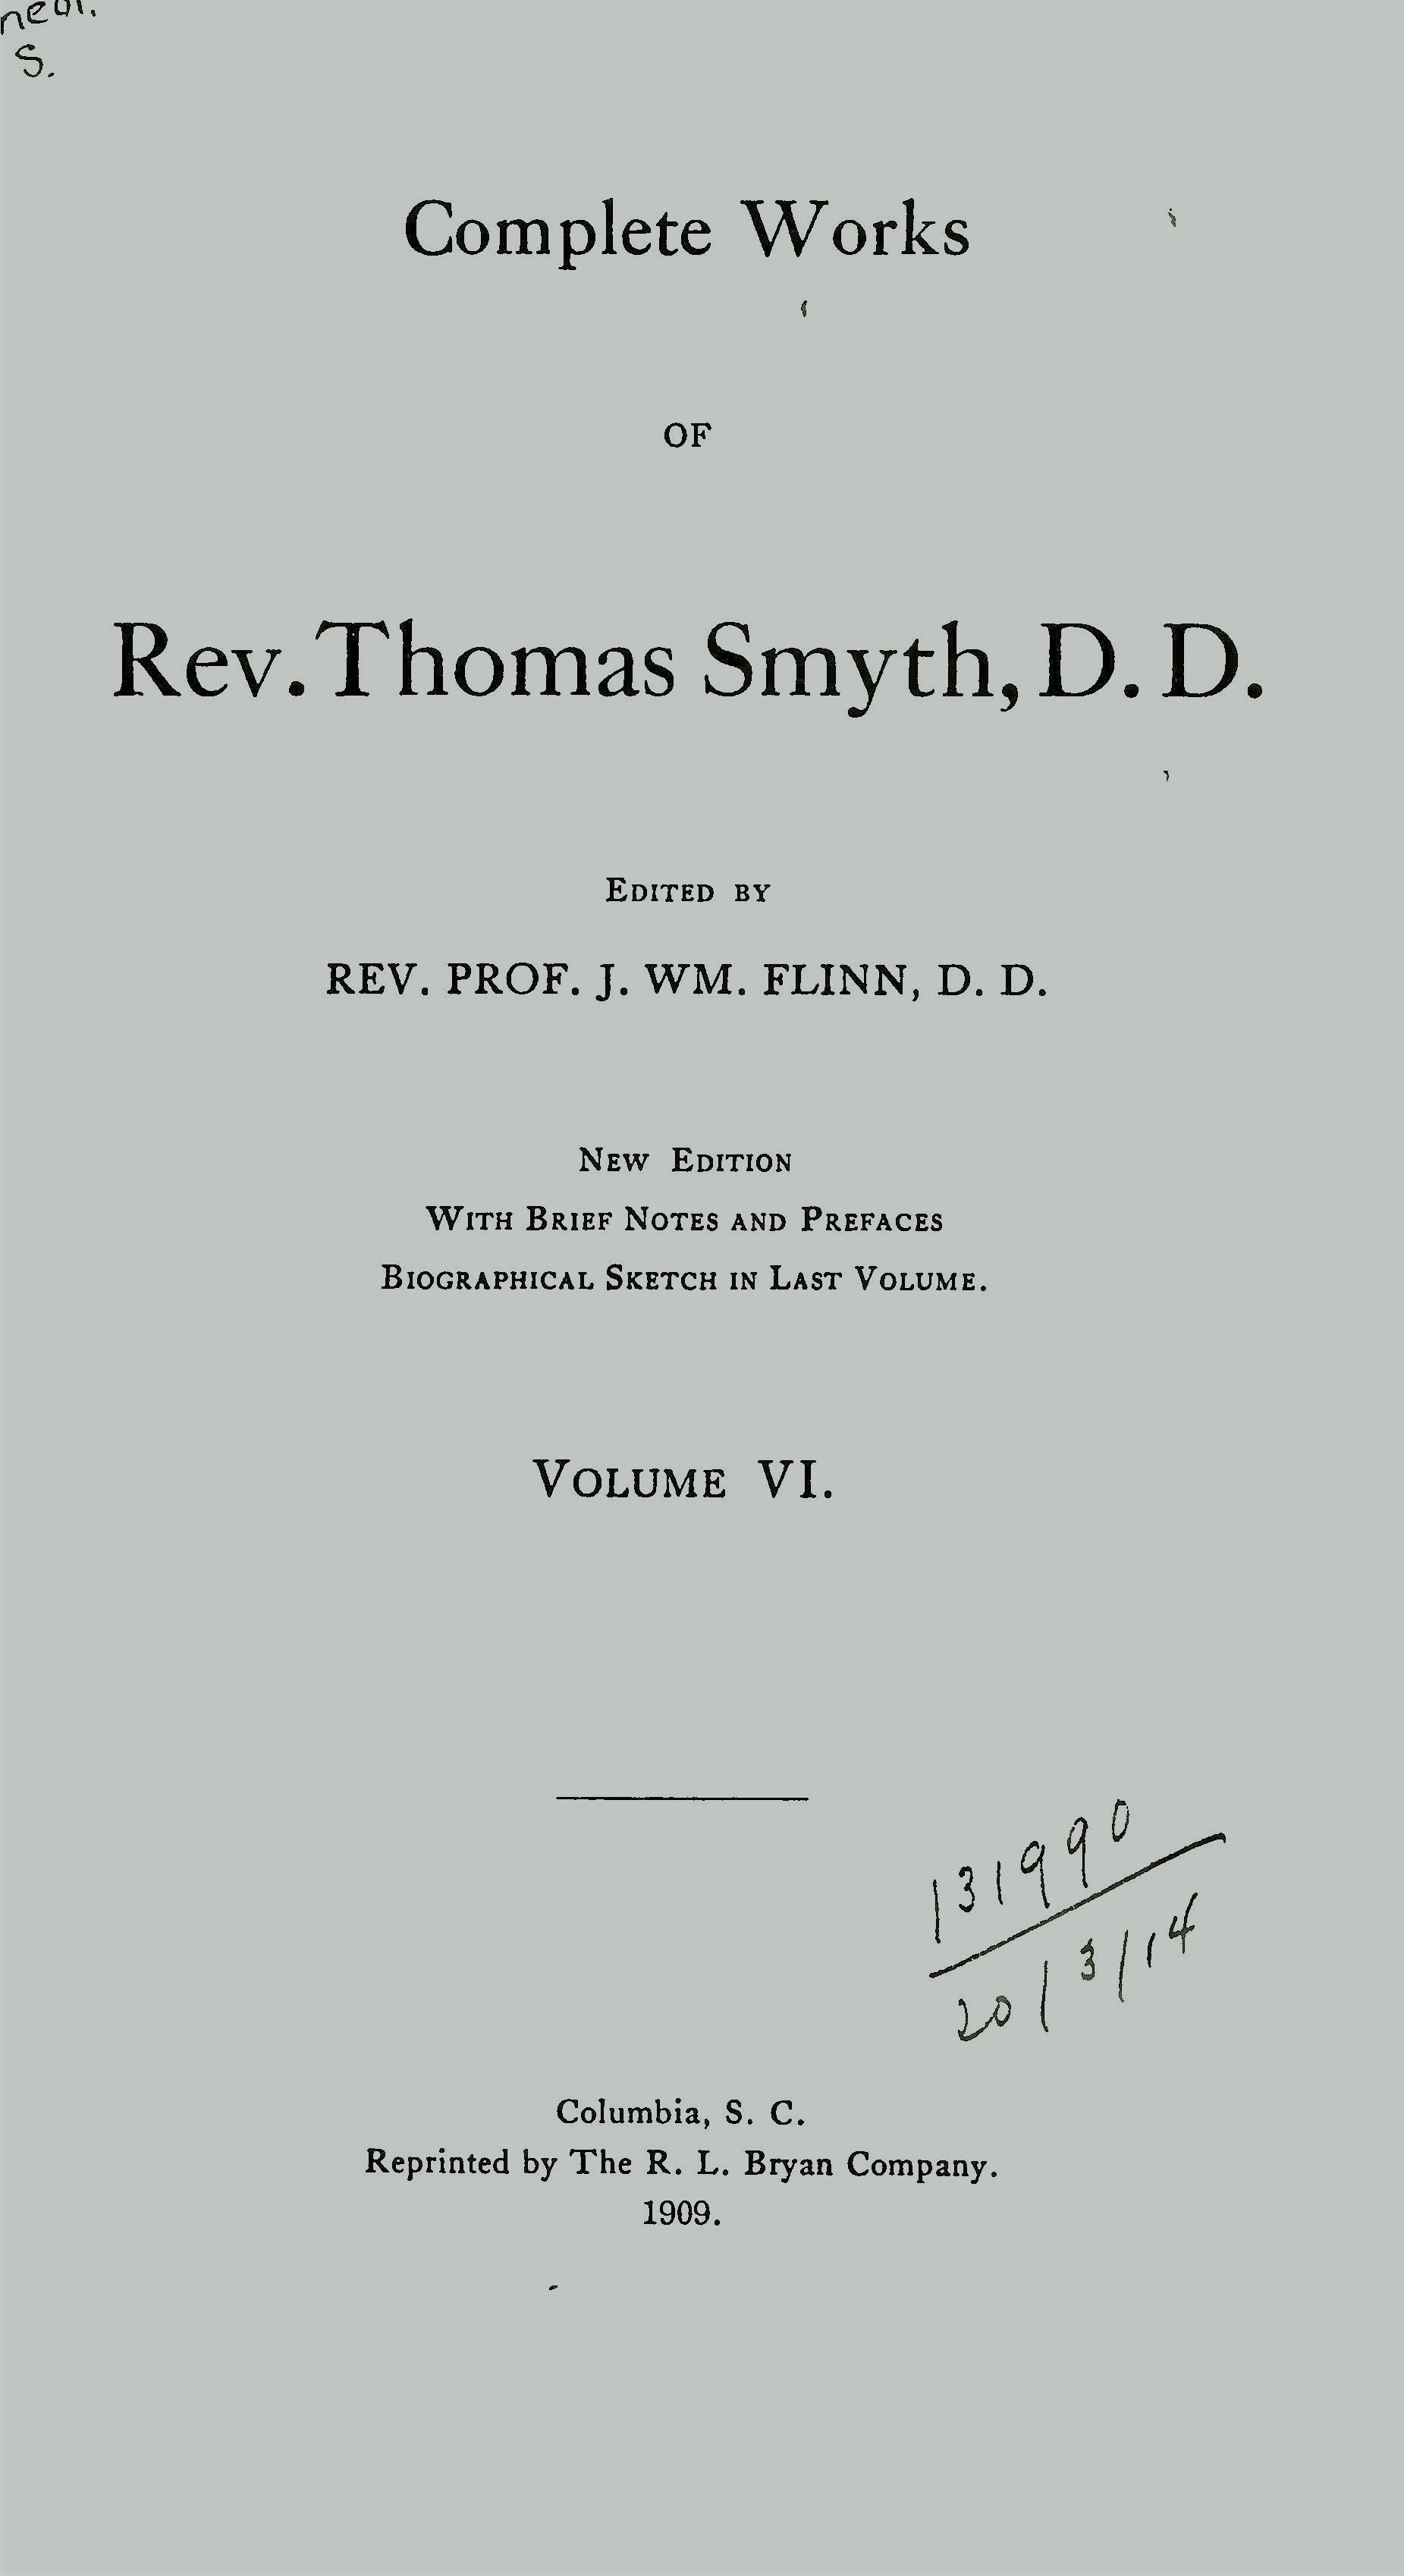 1. The Primitive Revelation of a Divine and Incarnate Savior Traced in the History and Rites of Bacchus 2. National Righteousness 3. Union to Christ and to His Church; or, The Duty and Privilege of All to Believe in Christ, and to Become Communing Members of the Church of Christ 4. The Divine Appointment and Obligation of Capital Punishment with its Bearing on the Recent Execution of Colored Persons, and their Religious Instruction 5. Mary not a Perpetual Virgin, nor the Mother of God: But Only a Sinner Saved by Grace, Through the Worship and Mediation of Jesus Christ, Her God and our God. Together with a View of the True Position, Duty and Liberty of Woman under the Gospel Dispensation. 6. An Address on Giving the Right Hand of Fellowship, Delivered at the Installation of Rev. Thomas Osborne Rice as Pastor of the Independent Congregational (Circular) Church, Charleston, S. C., April 1, 1860 7. Services on the Occasion of the Ordination of the Rev. F. P. Mullally, and the Installation of Rev. J. H. Thornwell, D.D., and Rev. F. P. Mullally, as Co-Pastors of the First Presbyterian Church, Columbia, S. C., Sermon by Rev. John L. Girardeau, Charges, by Rev. Thomas Smyth, D.D., May 4th, 1860 8. Preach the Word 9. Preaching Through the Press the Duty of All, A Discourse 10. Gospel Preaching Must Be Doctrinal Preaching, A Discourse 11. Fear as a Christian Motive, Two Discourses 12. Consciousness and Fright of Sin, A Discourse 13. Every Man Under Obligation to Believe and Confess Christ by Union to His Church and an Open Confession of His Ordinances and [2nd item] The Duty and Privilege of Belief and Confession Urged Upon Doubting Sinners 14. The Young Man Miserable and the Young Man Happy, Four Discourses 15. Bible Temperance, Five Articles 16. A Defense of the Ecclesiastical Boards of the Presbyterian Church 17. The World-Reaching Sound and World-Preaching Sound, A Sermon 18. Our Election Made Sure 19. The Peculiar Song and Service of the Redeemed, A Sermon 20. The Questi